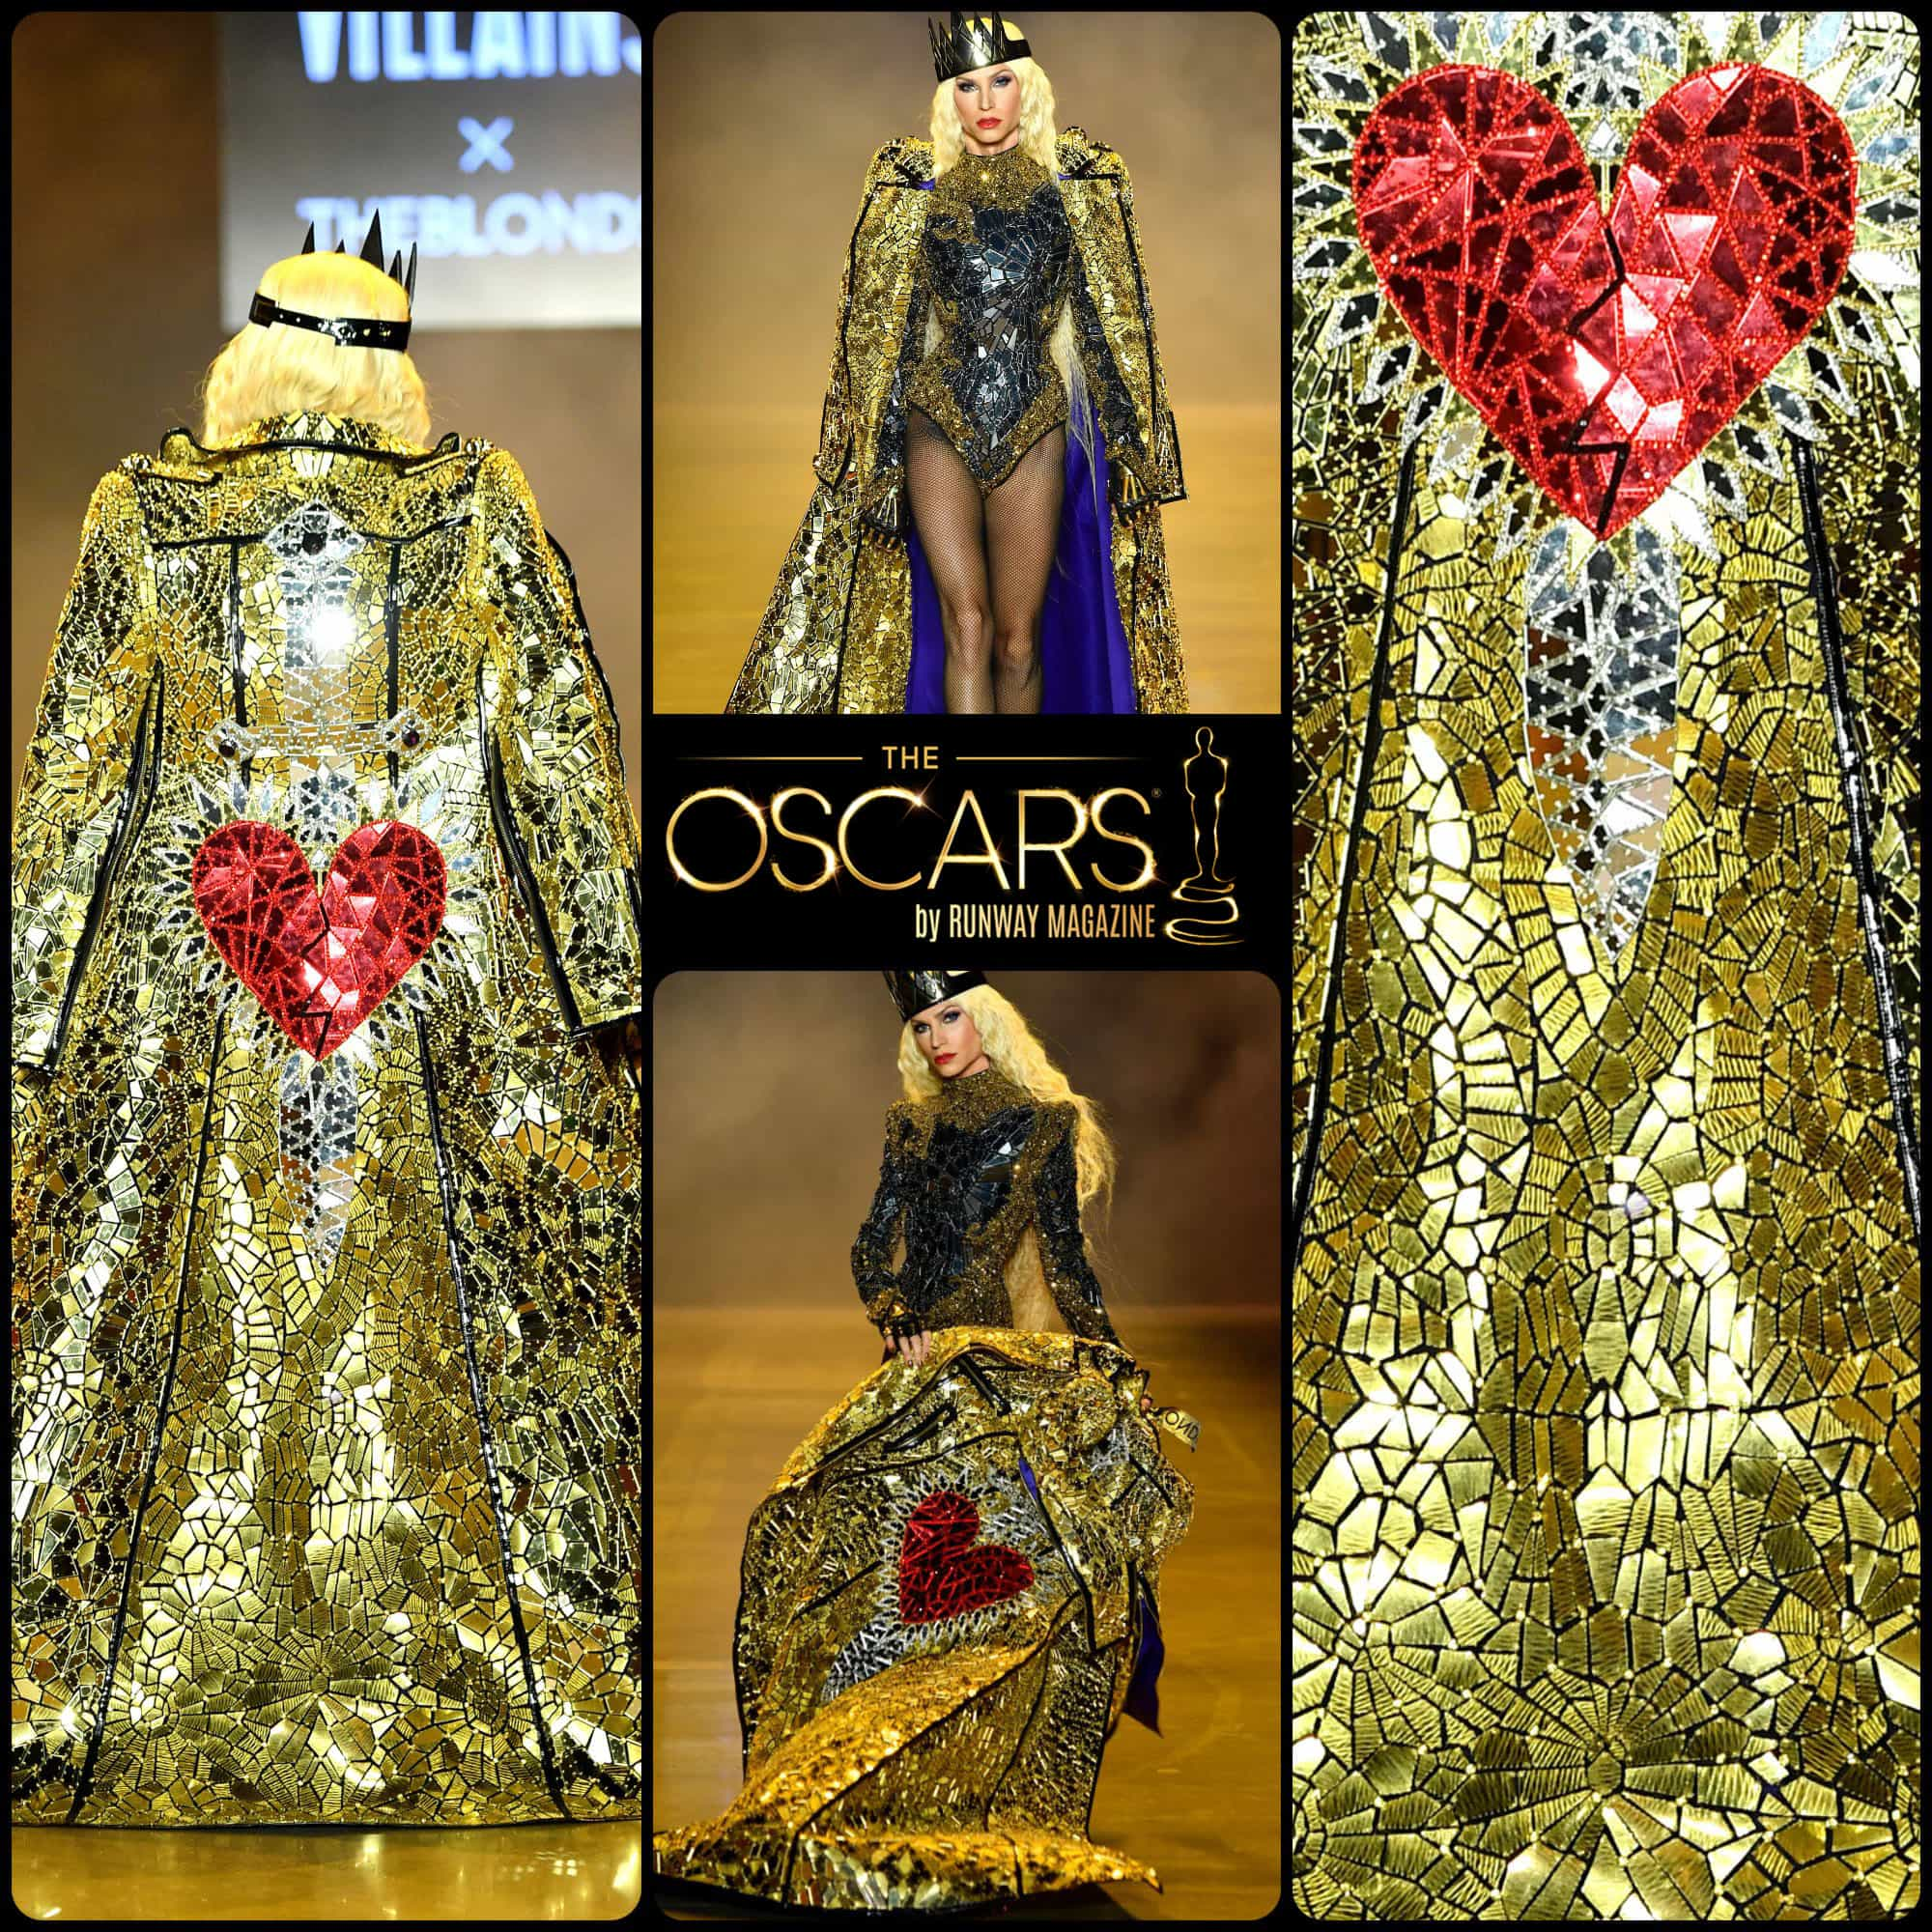 Oscars 2020 Billy Porter coat by THE BLONDS SS 2019 Disney Villains collection - RUNWAY MAGAZINE